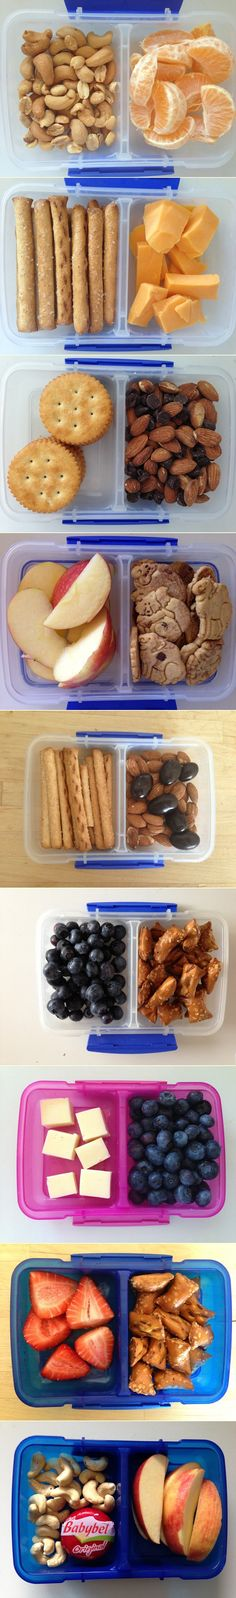 Grab and go snack ideas!